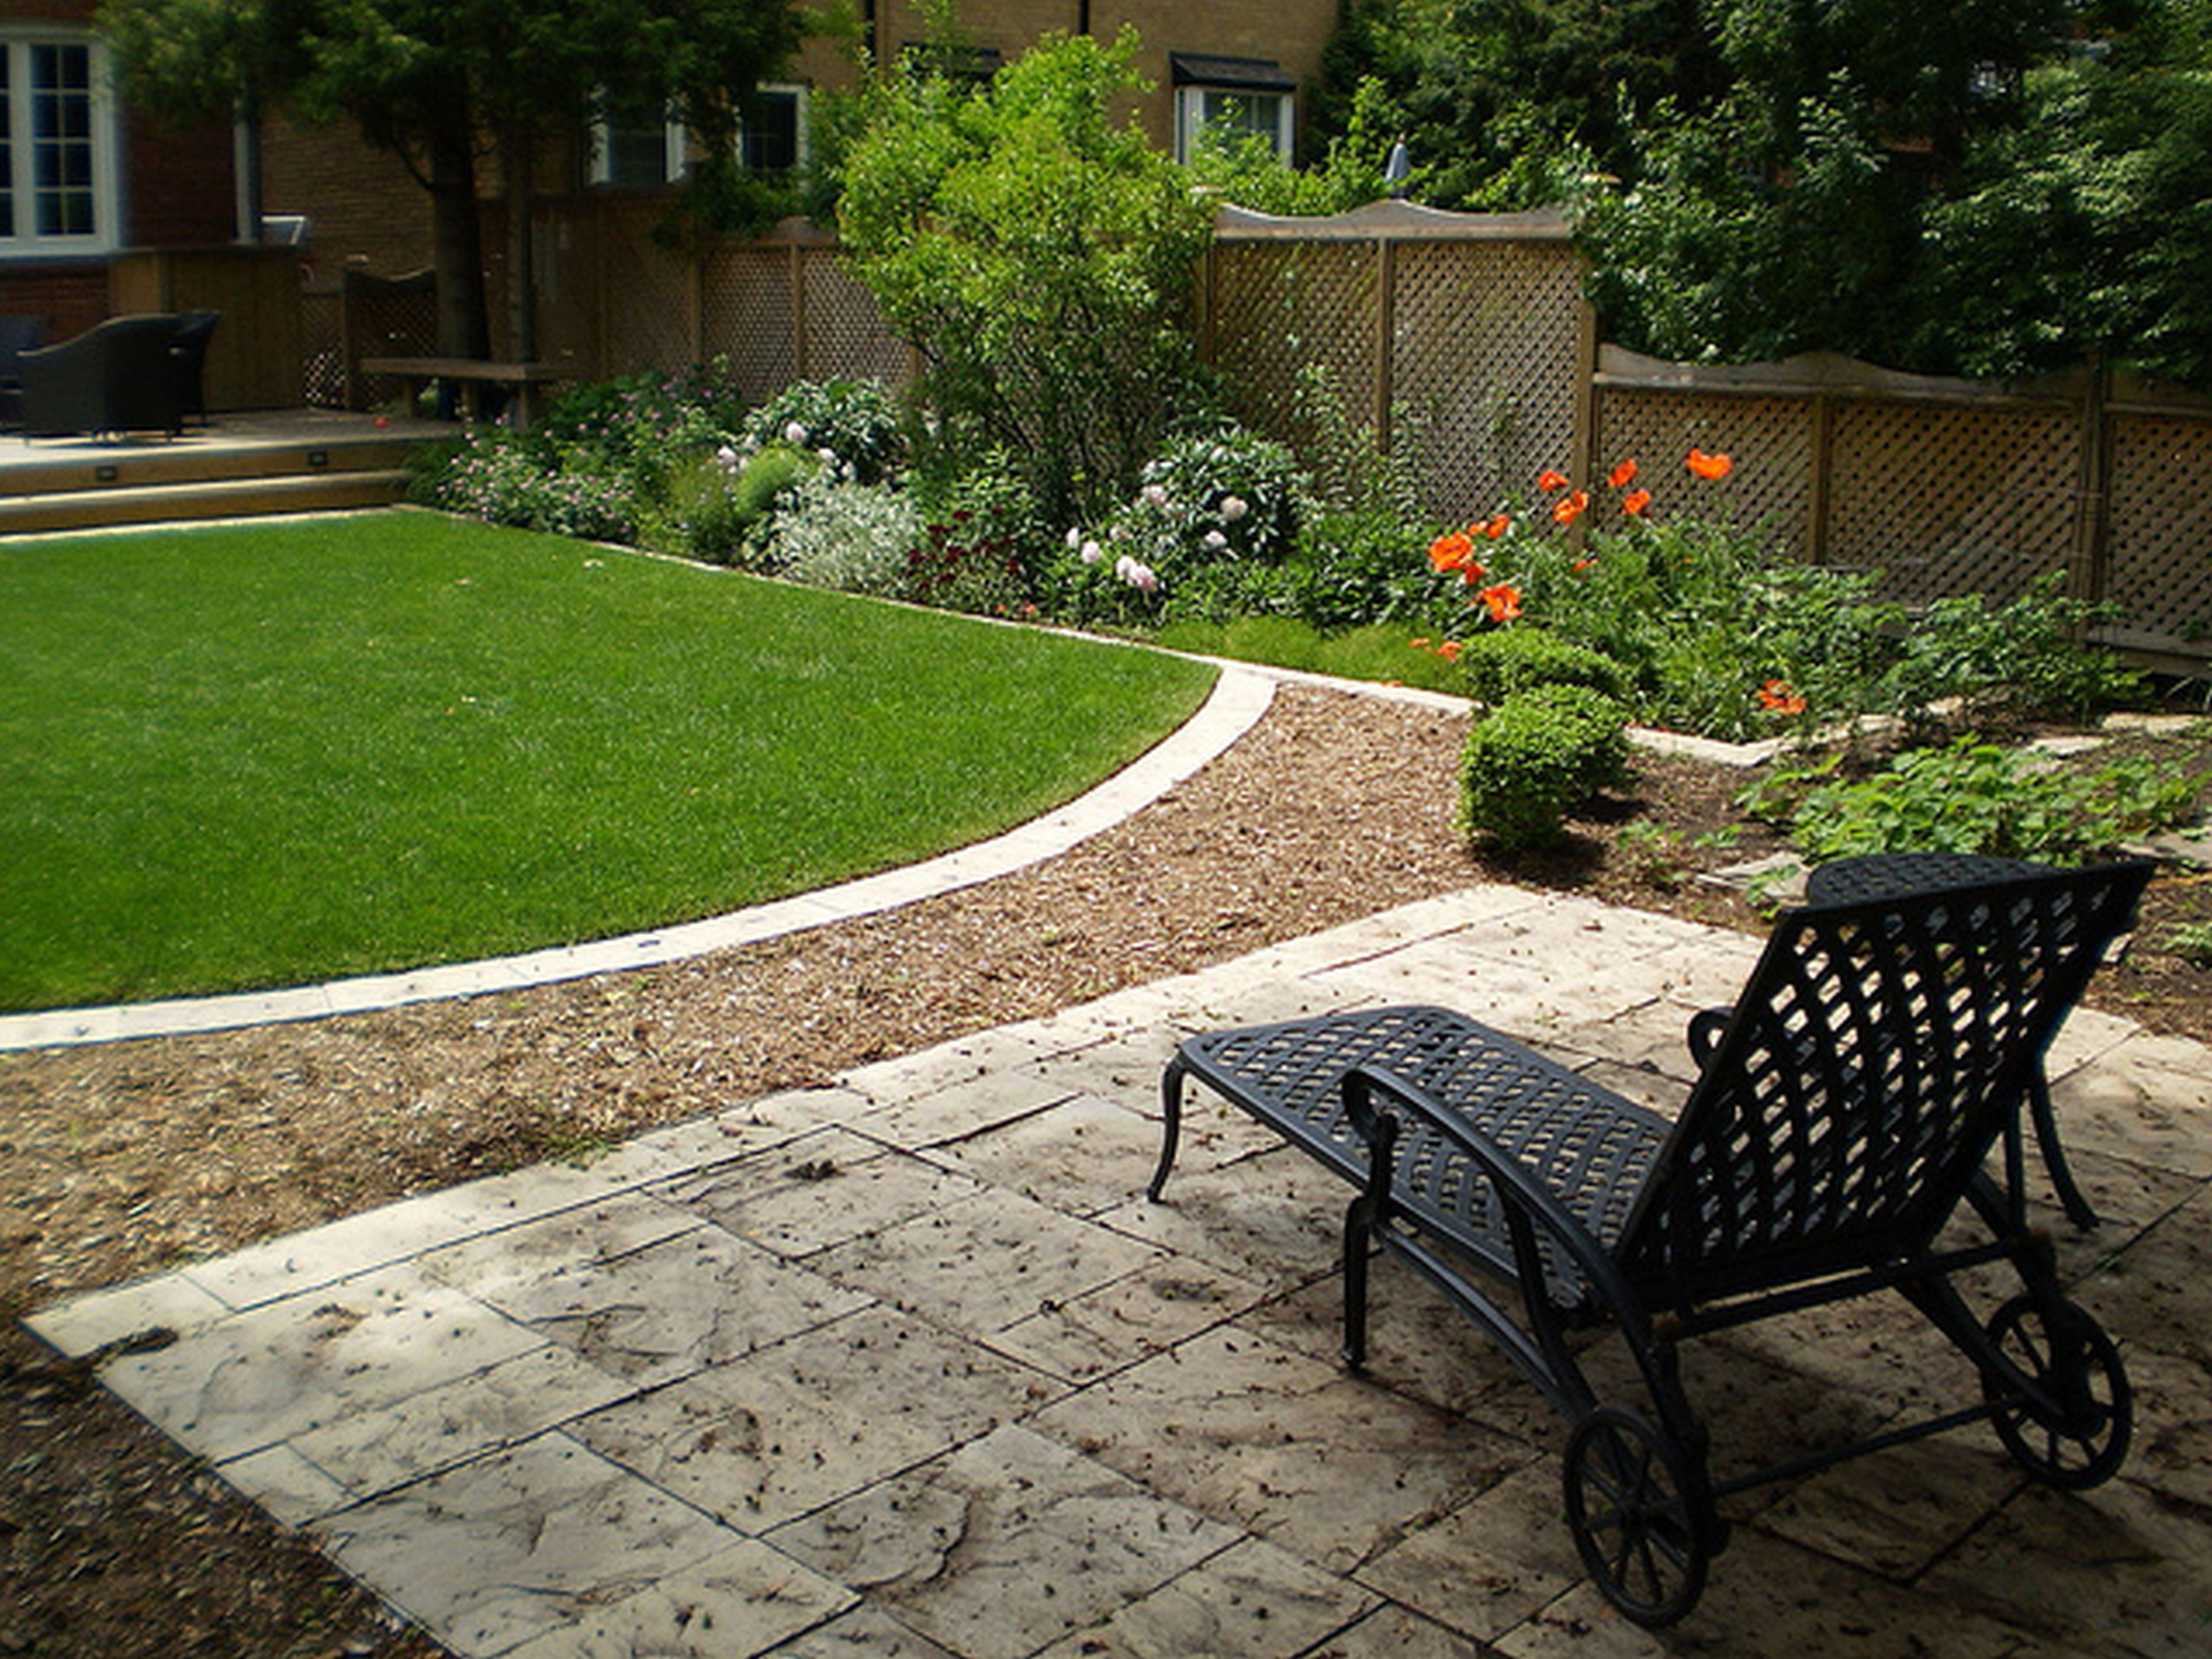 Best ideas about Small Backyard Design . Save or Pin Beautiful small backyard ideas to improve your home look Now.